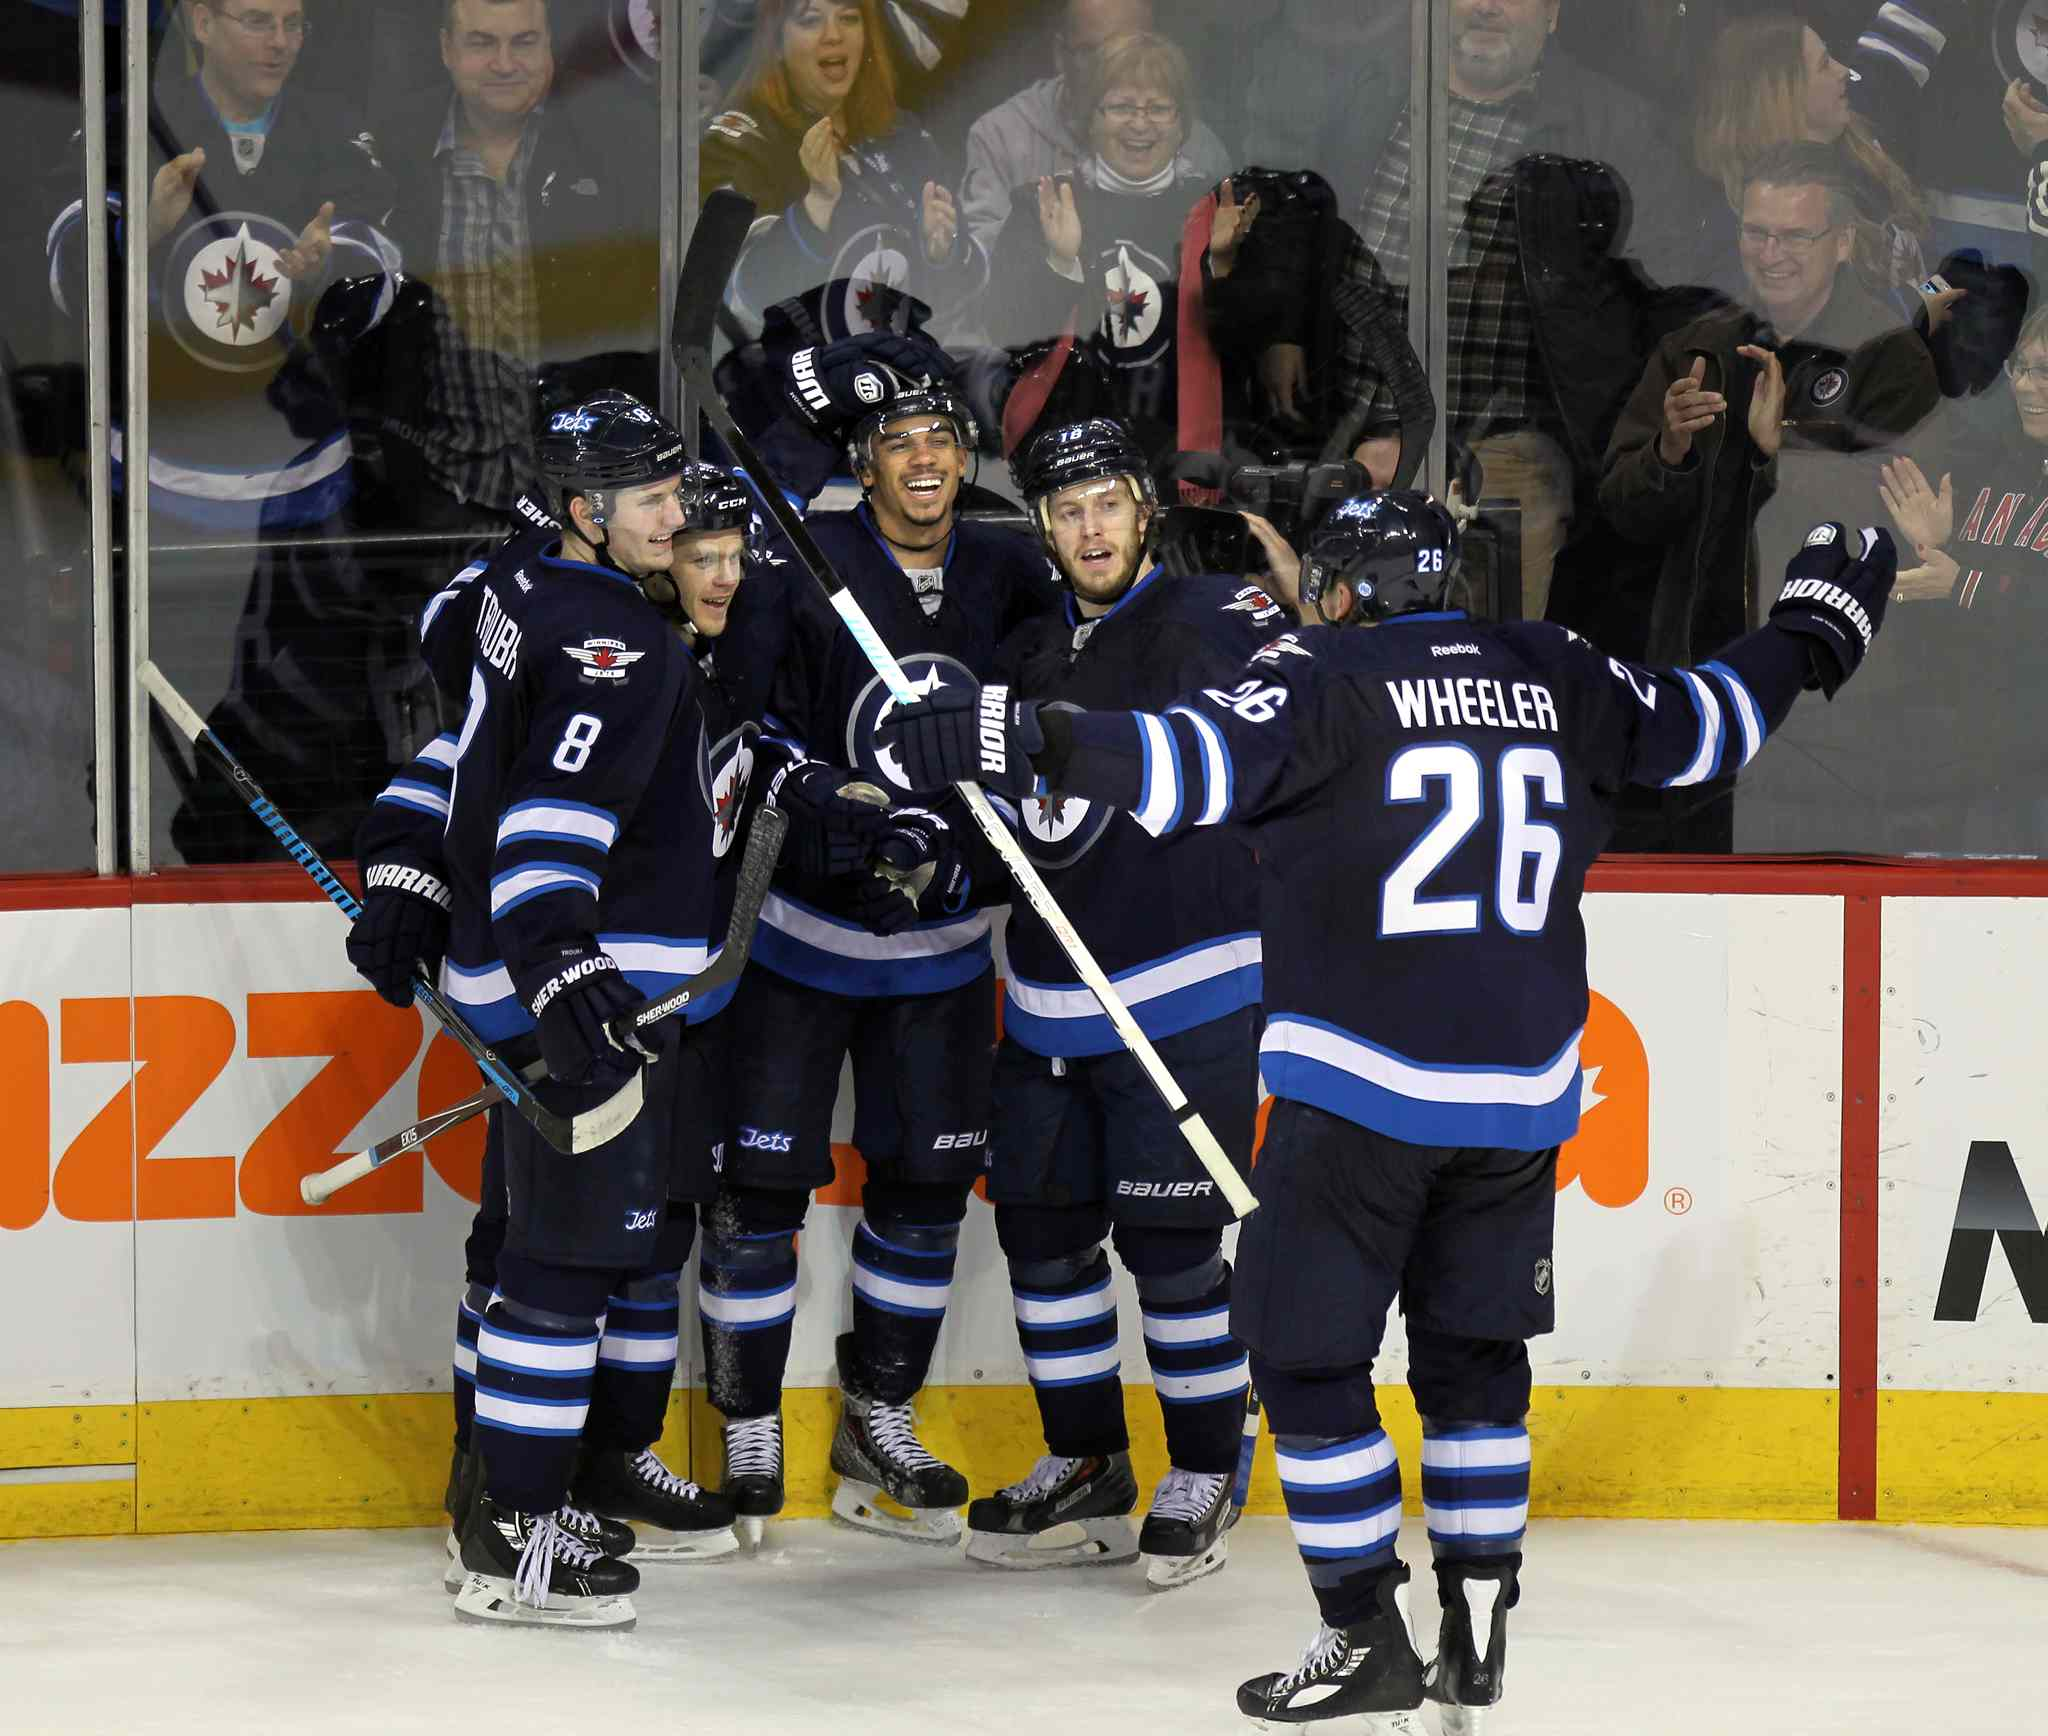 Jets' Blake Wheeler skates in to congratulate teammate Evander Kane for scoring the tying goal against the Boston Bruins Thursday at the MTS centre.